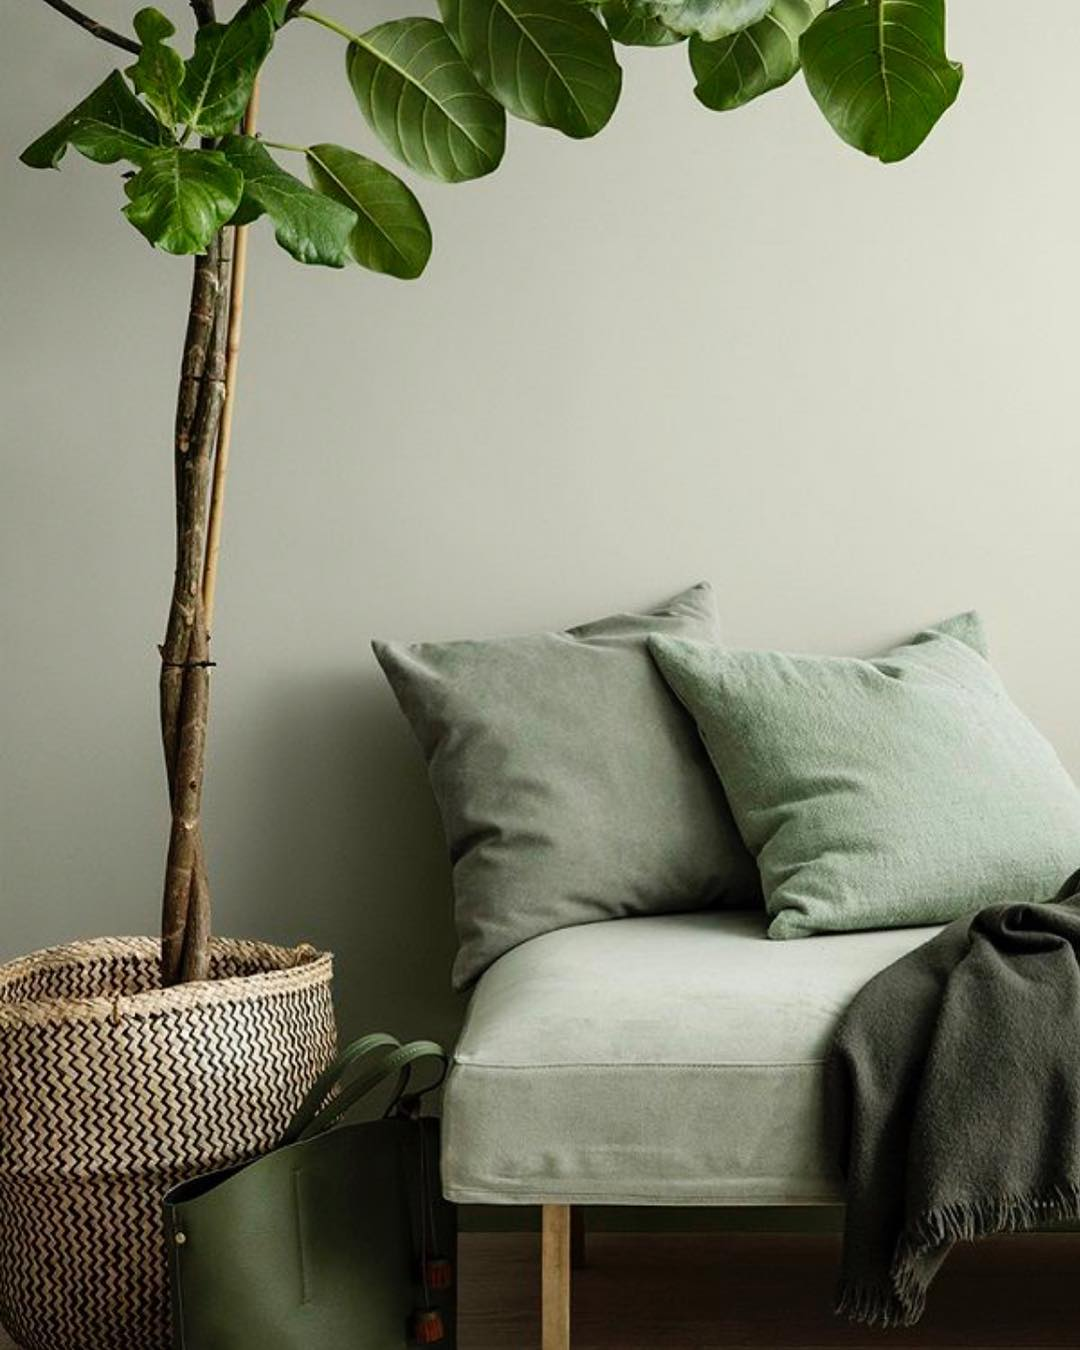 We Challenge You To Style Green Decor Ideas For A Week 2 green decor ideas We Challenge You To Style Green Decor Ideas For A Week We Challenge You To Style Green Decor Ideas For A Week 2